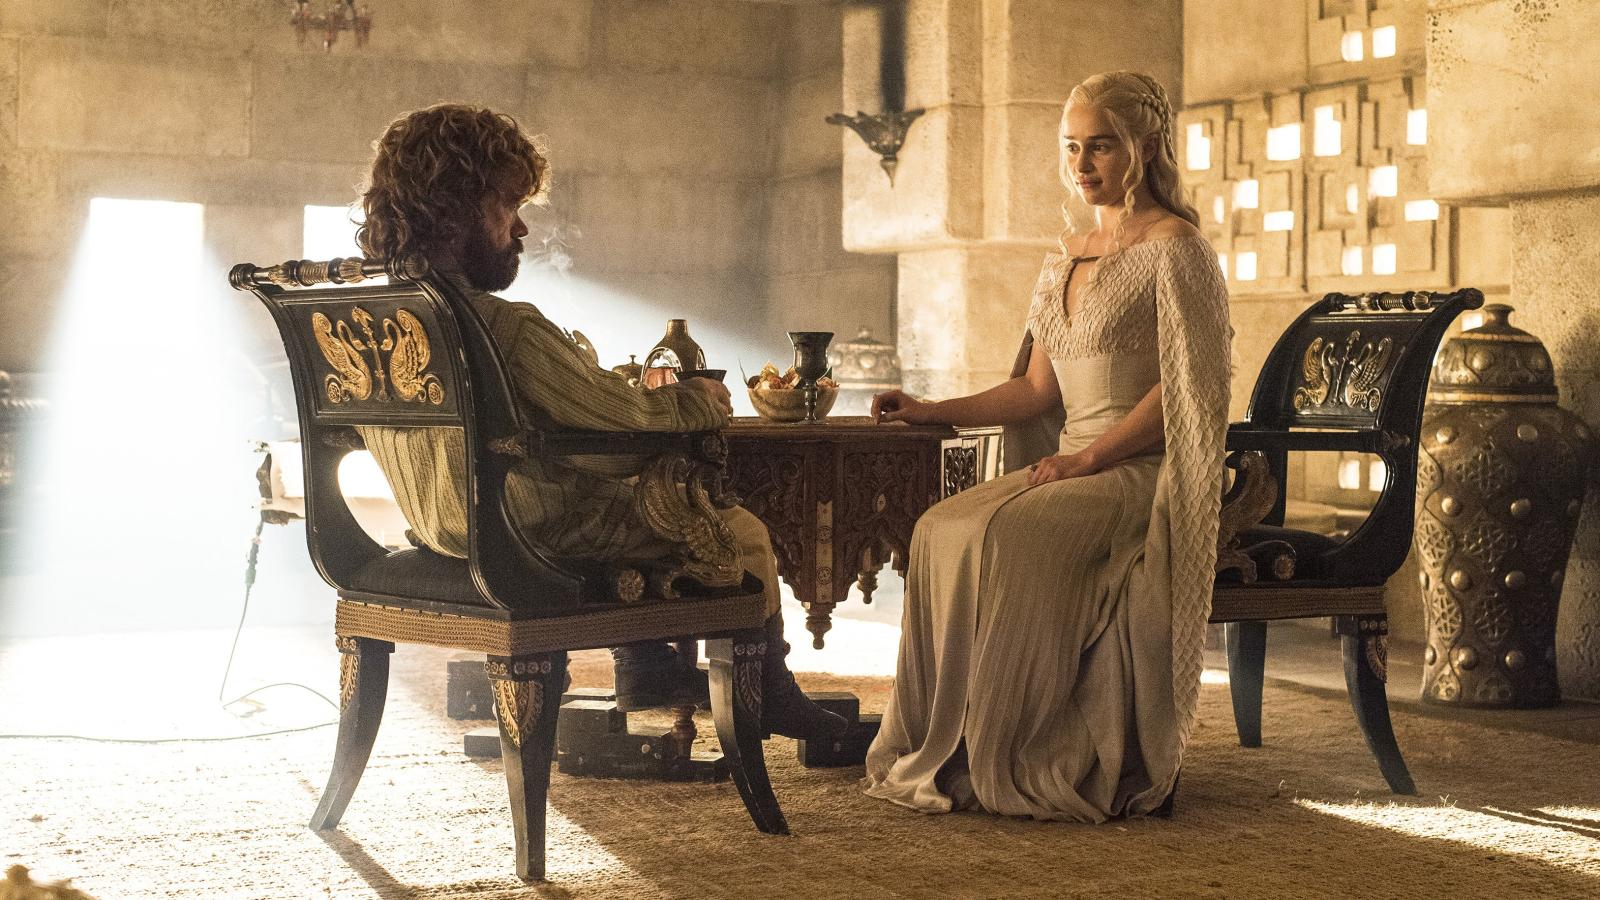 Mathematicians Med Out Every Of Thrones Relationship To Find The Main Character